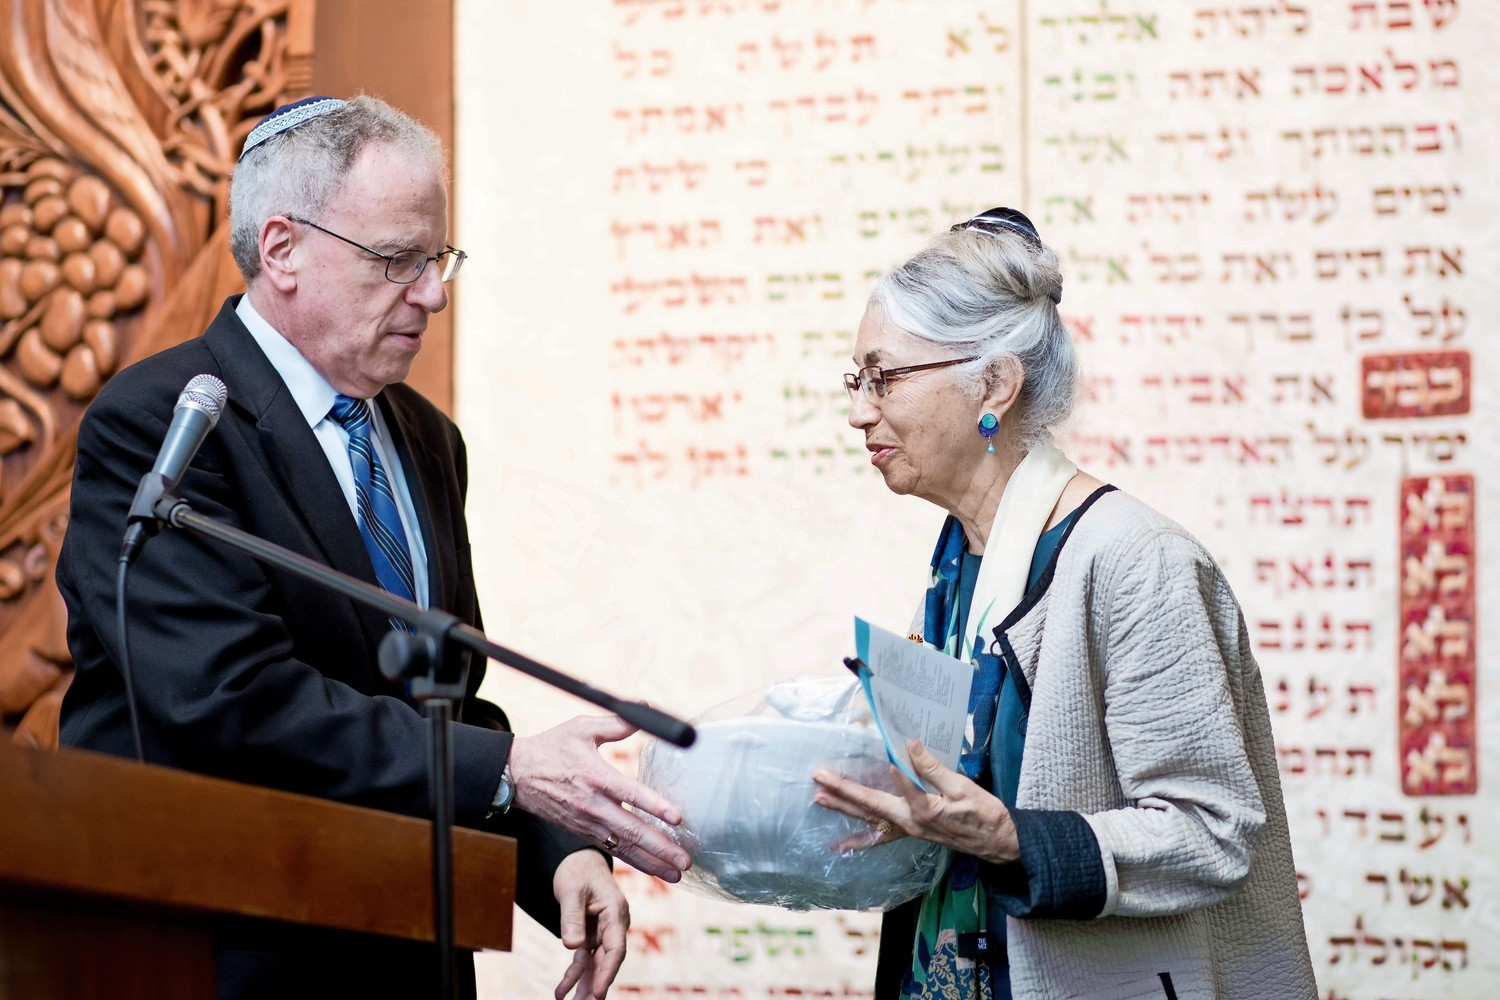 Assemblyman Jeffrey Dinowitz hands an award to Ruth Rosenblatt, a doctor, during an awards ceremony at the Bronx Jewish Community Center's annual 'Breakfast of Champions.'